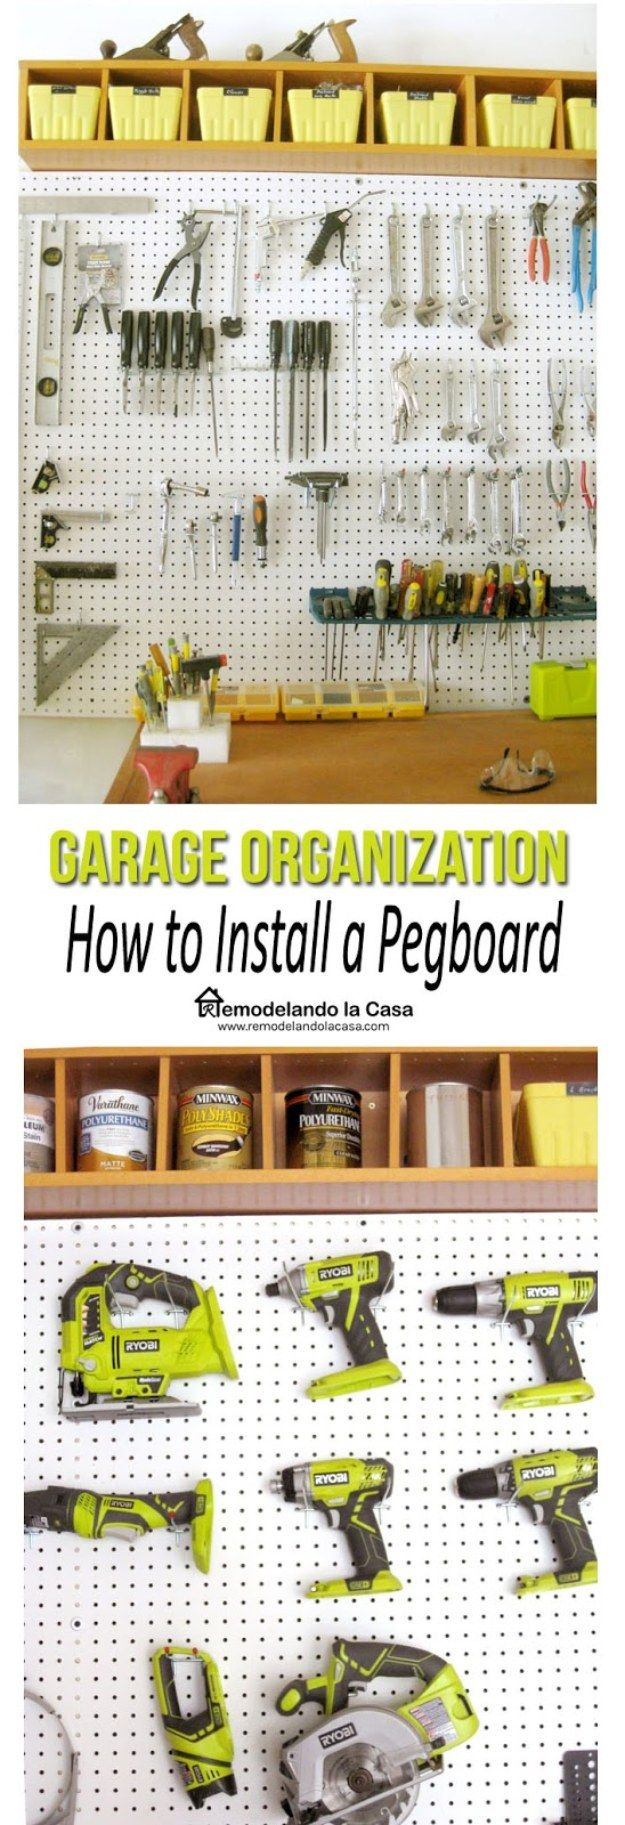 DIY Projects Your Garage Needs -Garage Pegboard Tutorial - Do It Yourself Garage Makeover Ideas Include Storage, Organization, Shelves, and Project Plans for Cool New Garage Decor http://diyjoy.com/diy-projects-garage